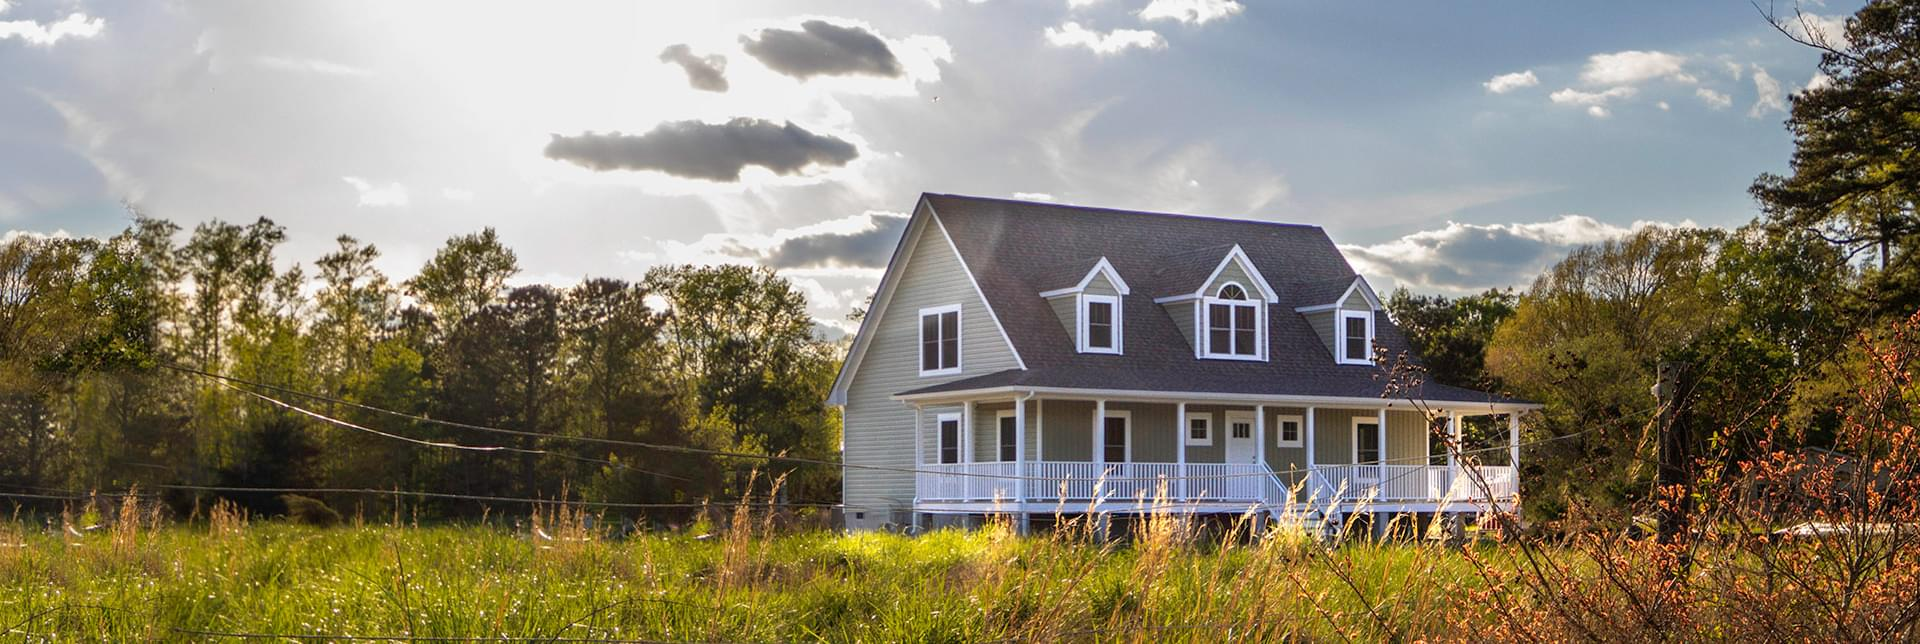 New Homes in Edgecombe County NC